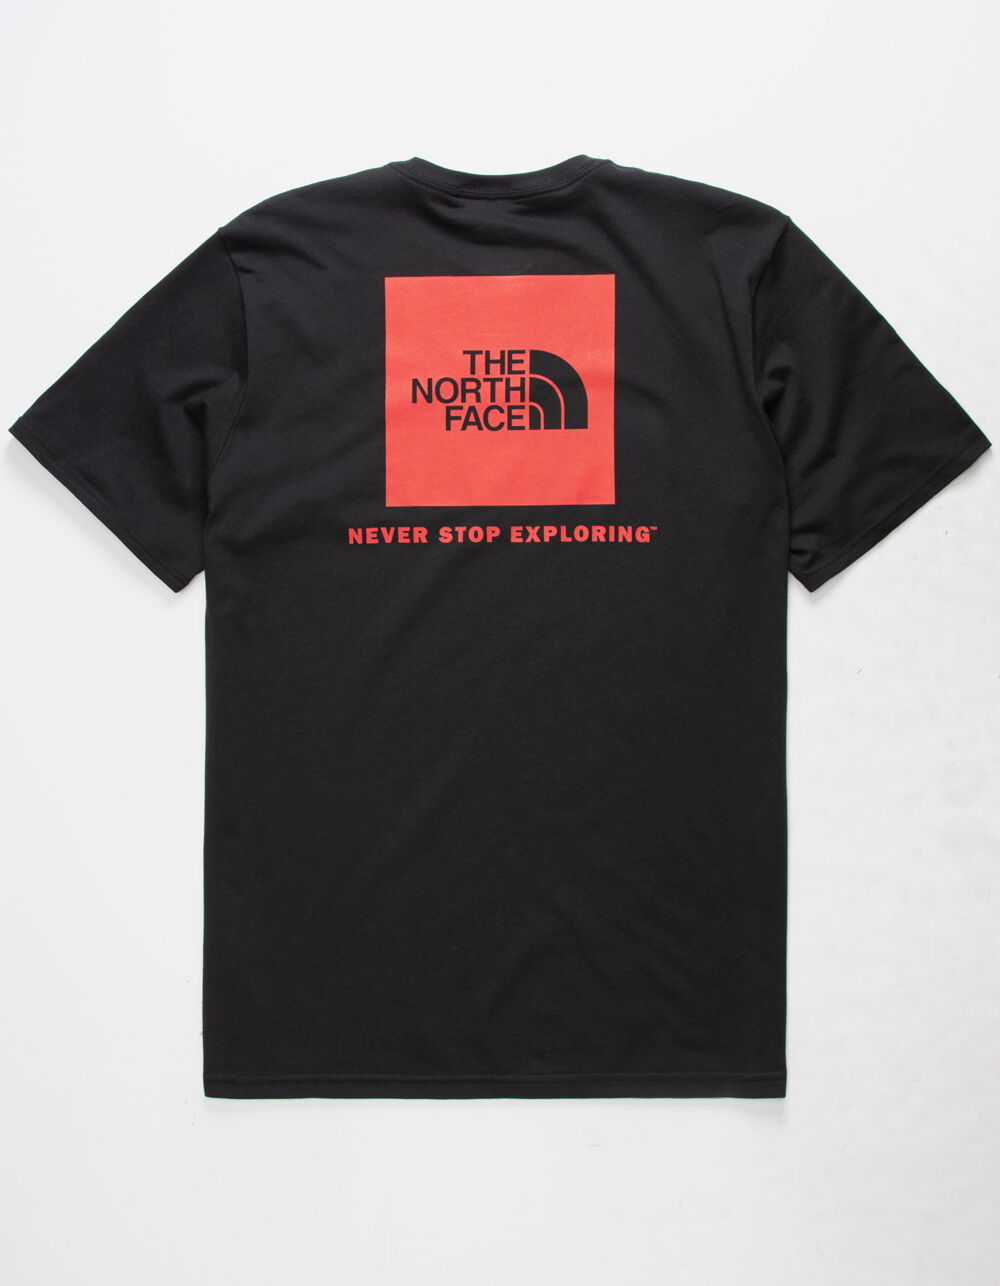 THE NORTH FACE Red Box Black T-Shirt